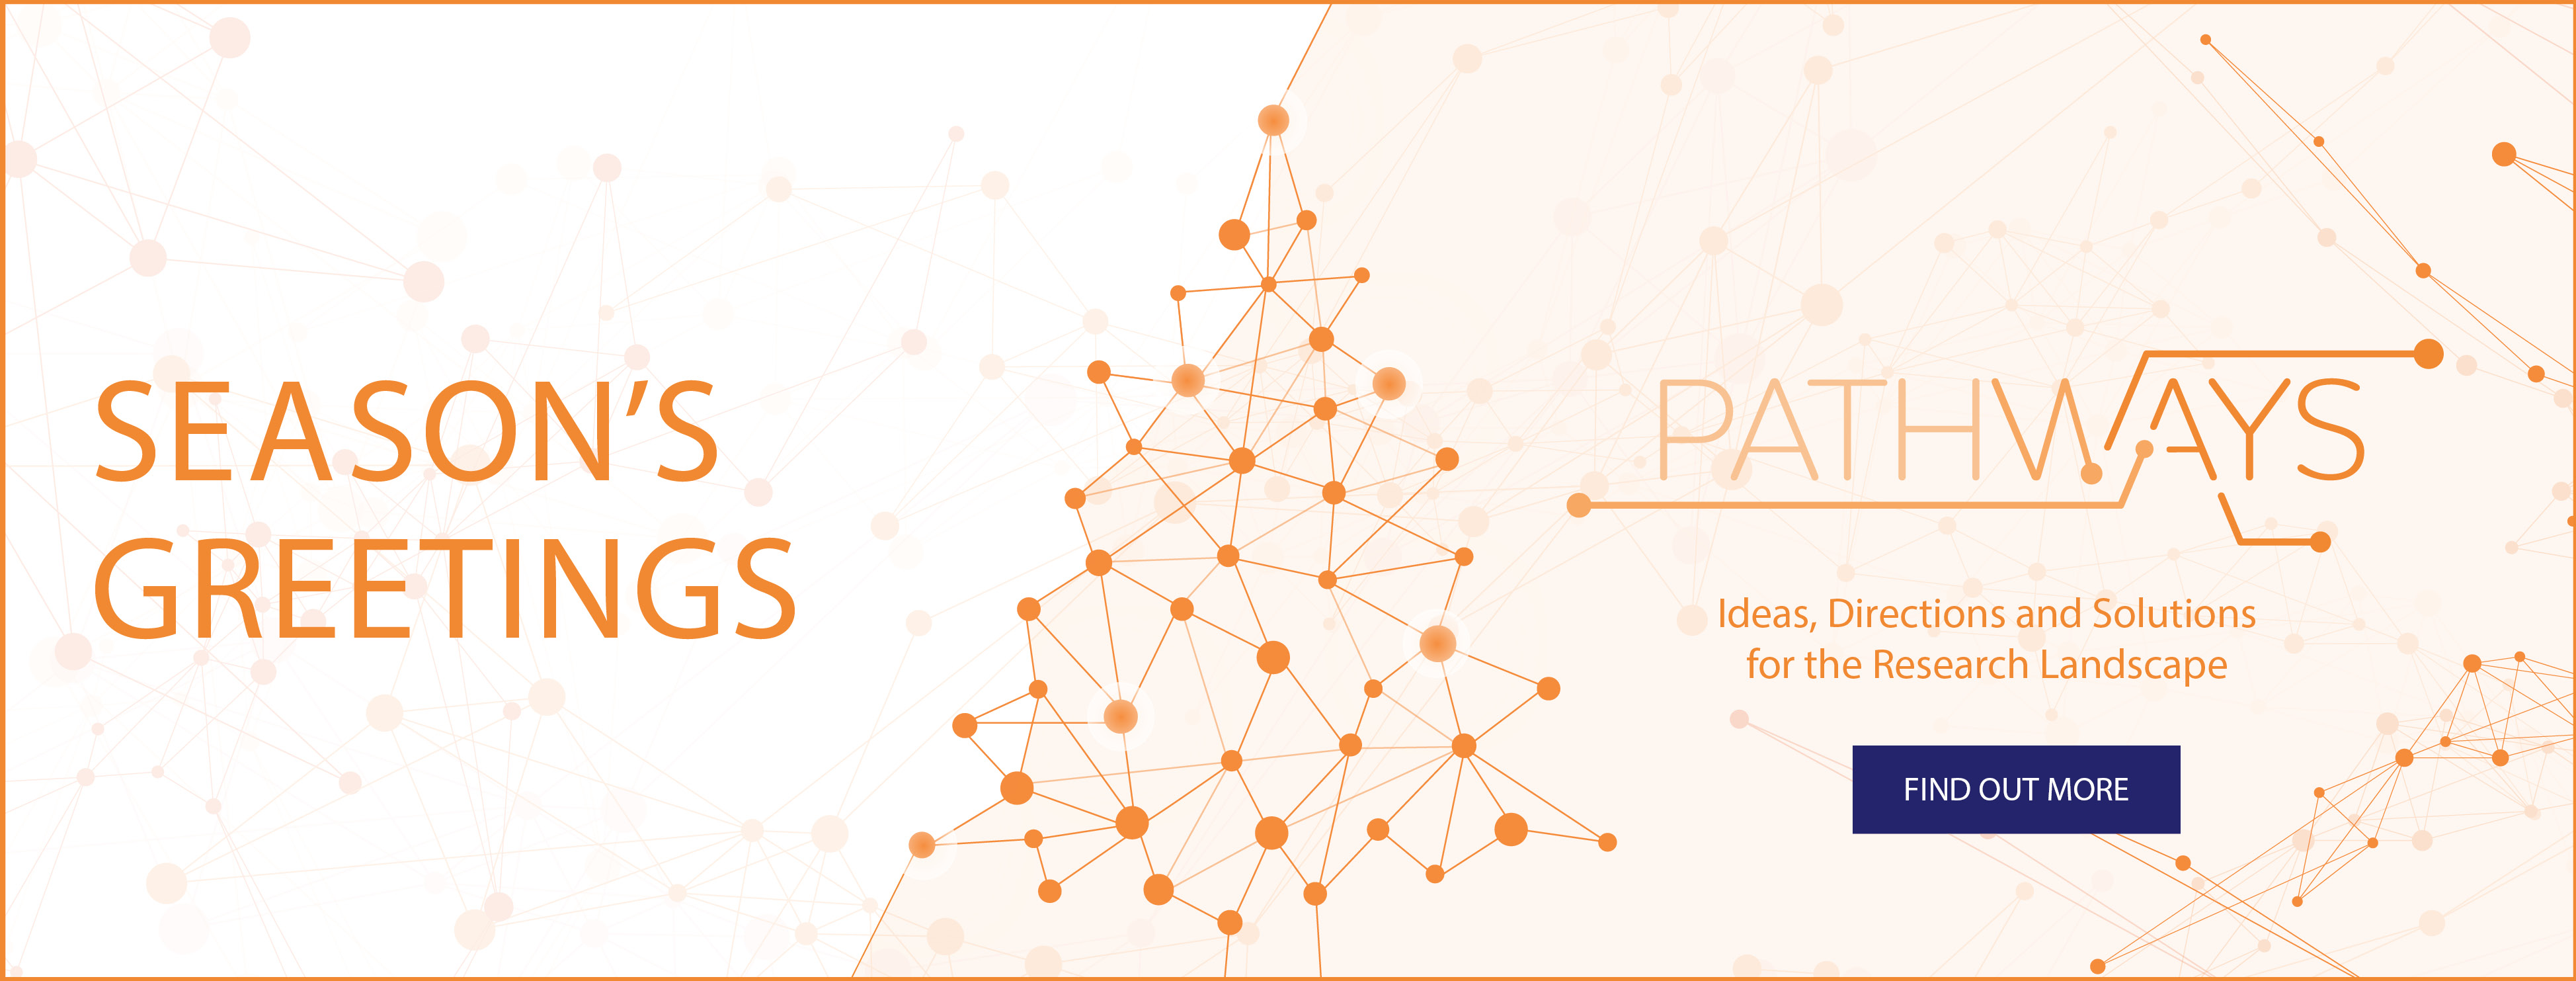 Pathways - Your Research Landscape